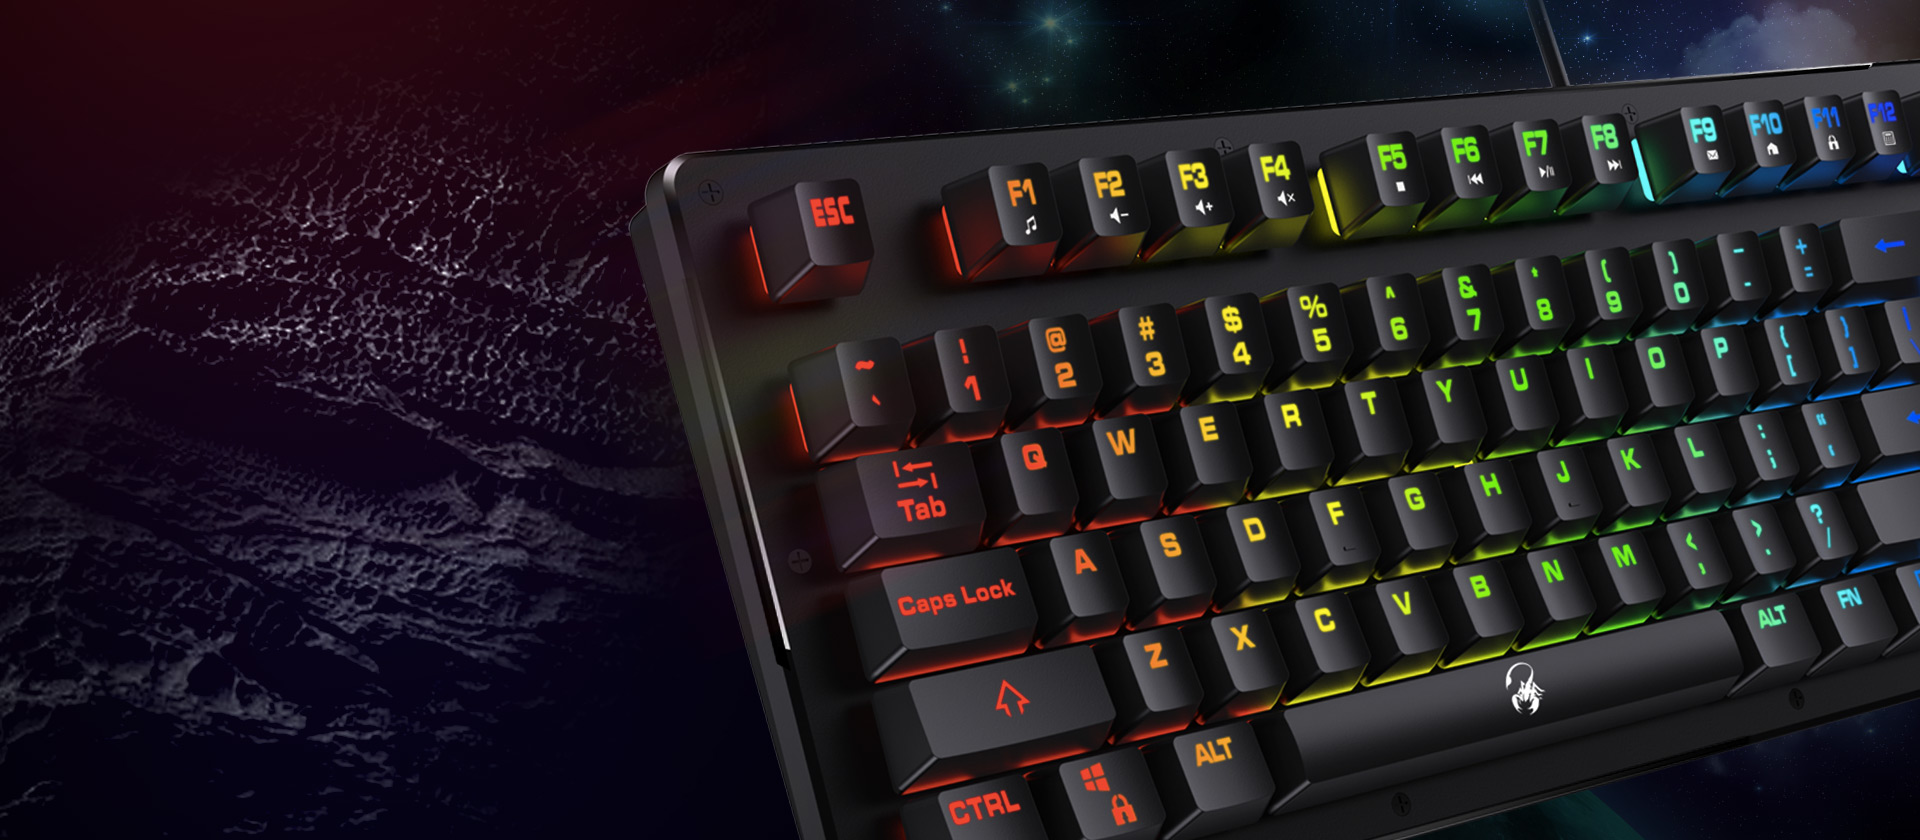 Genius Gaming Mouse Keyboard Headset And Speaker Devices